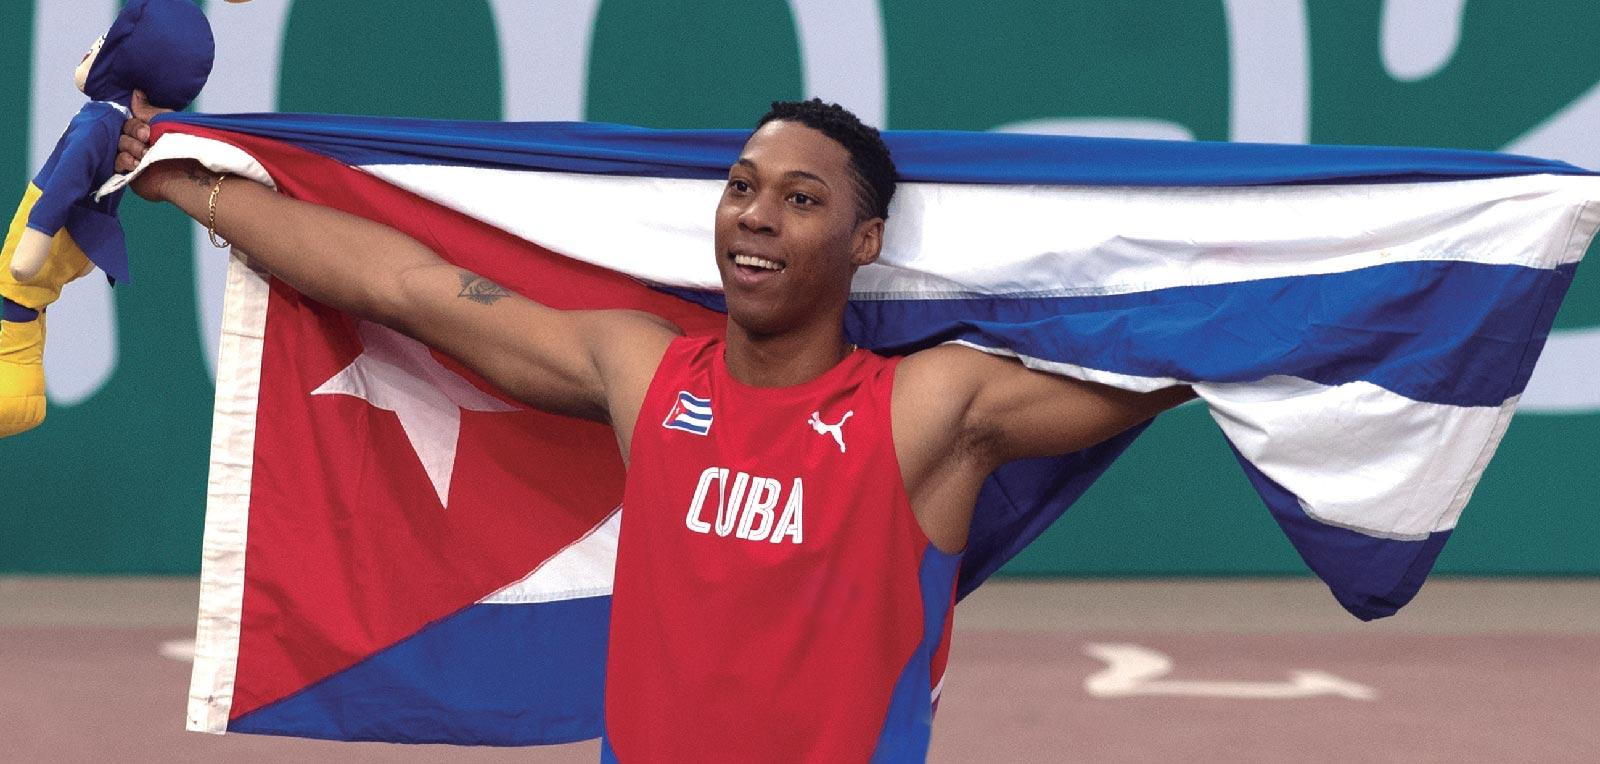 ECHEVARRÍA: a star from Cuba to light up the world